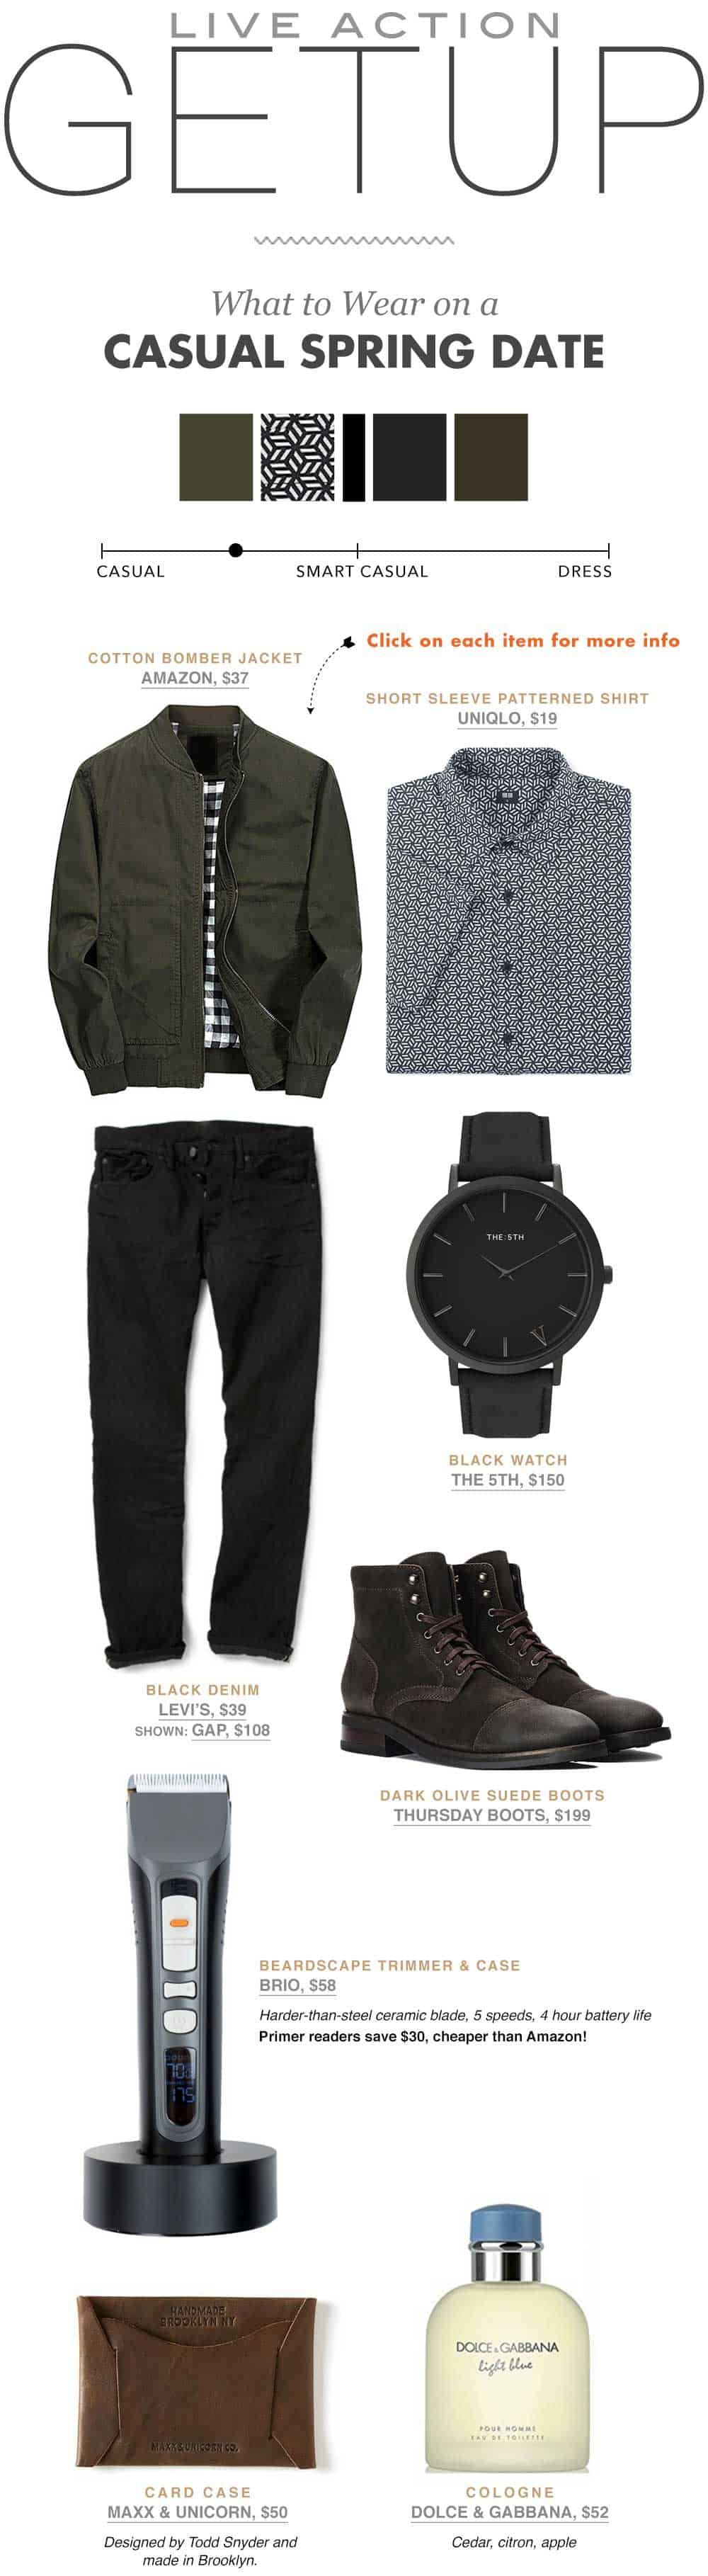 Spring Date - Casual Men's Fashion Inspiration - The Getup from Primer